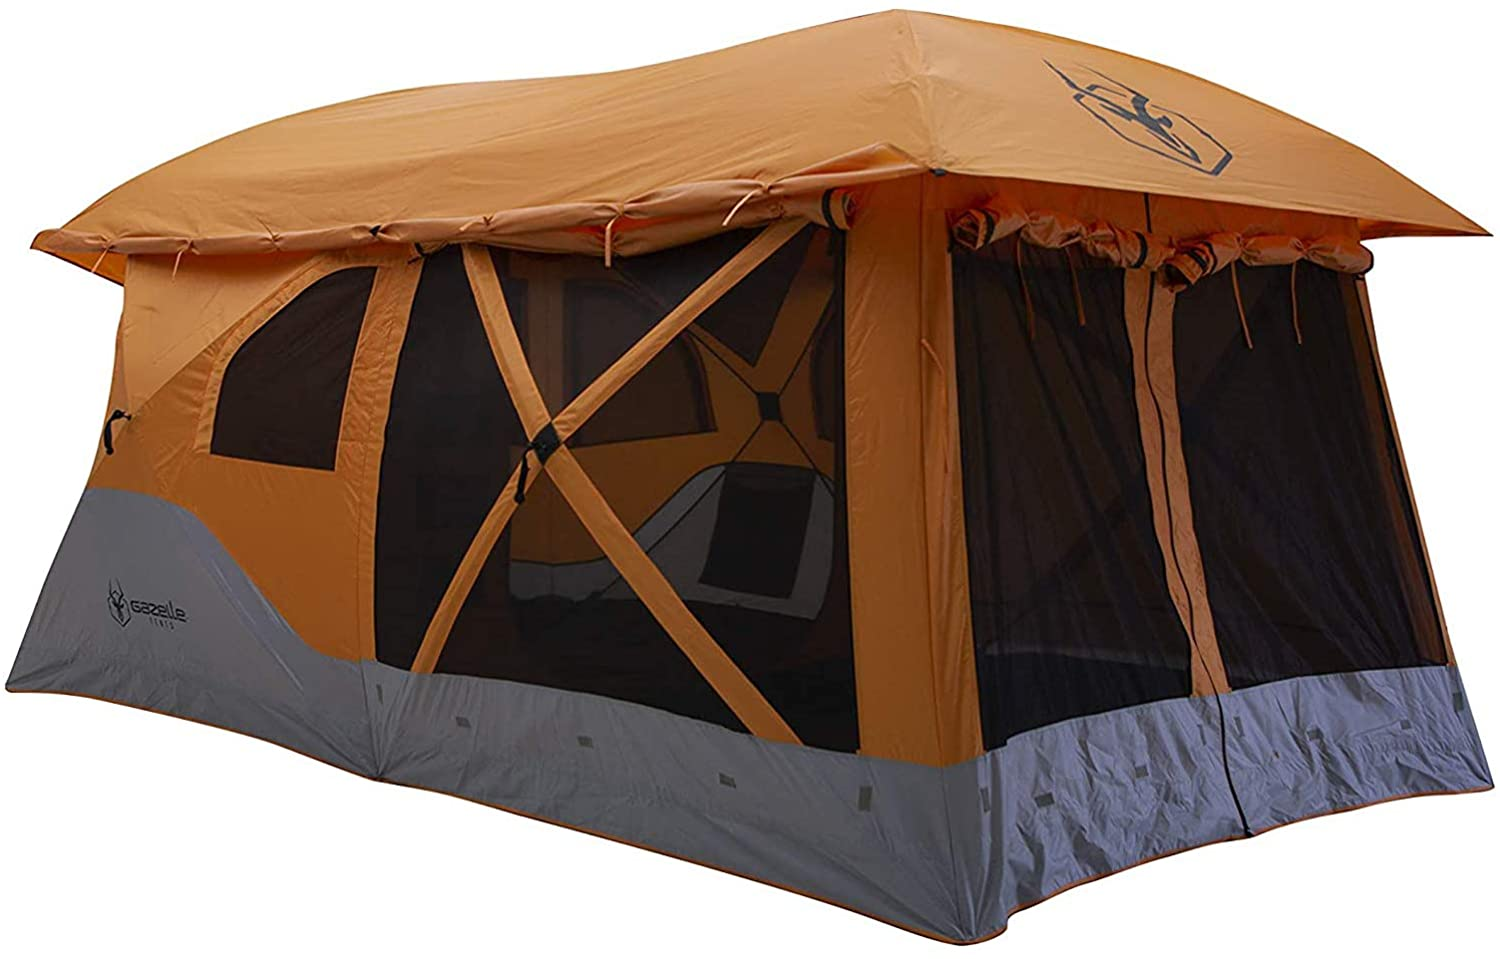 AZELLE T4 POP UP TENT| EASIEST TENT TO SET UP BY YOURSELF